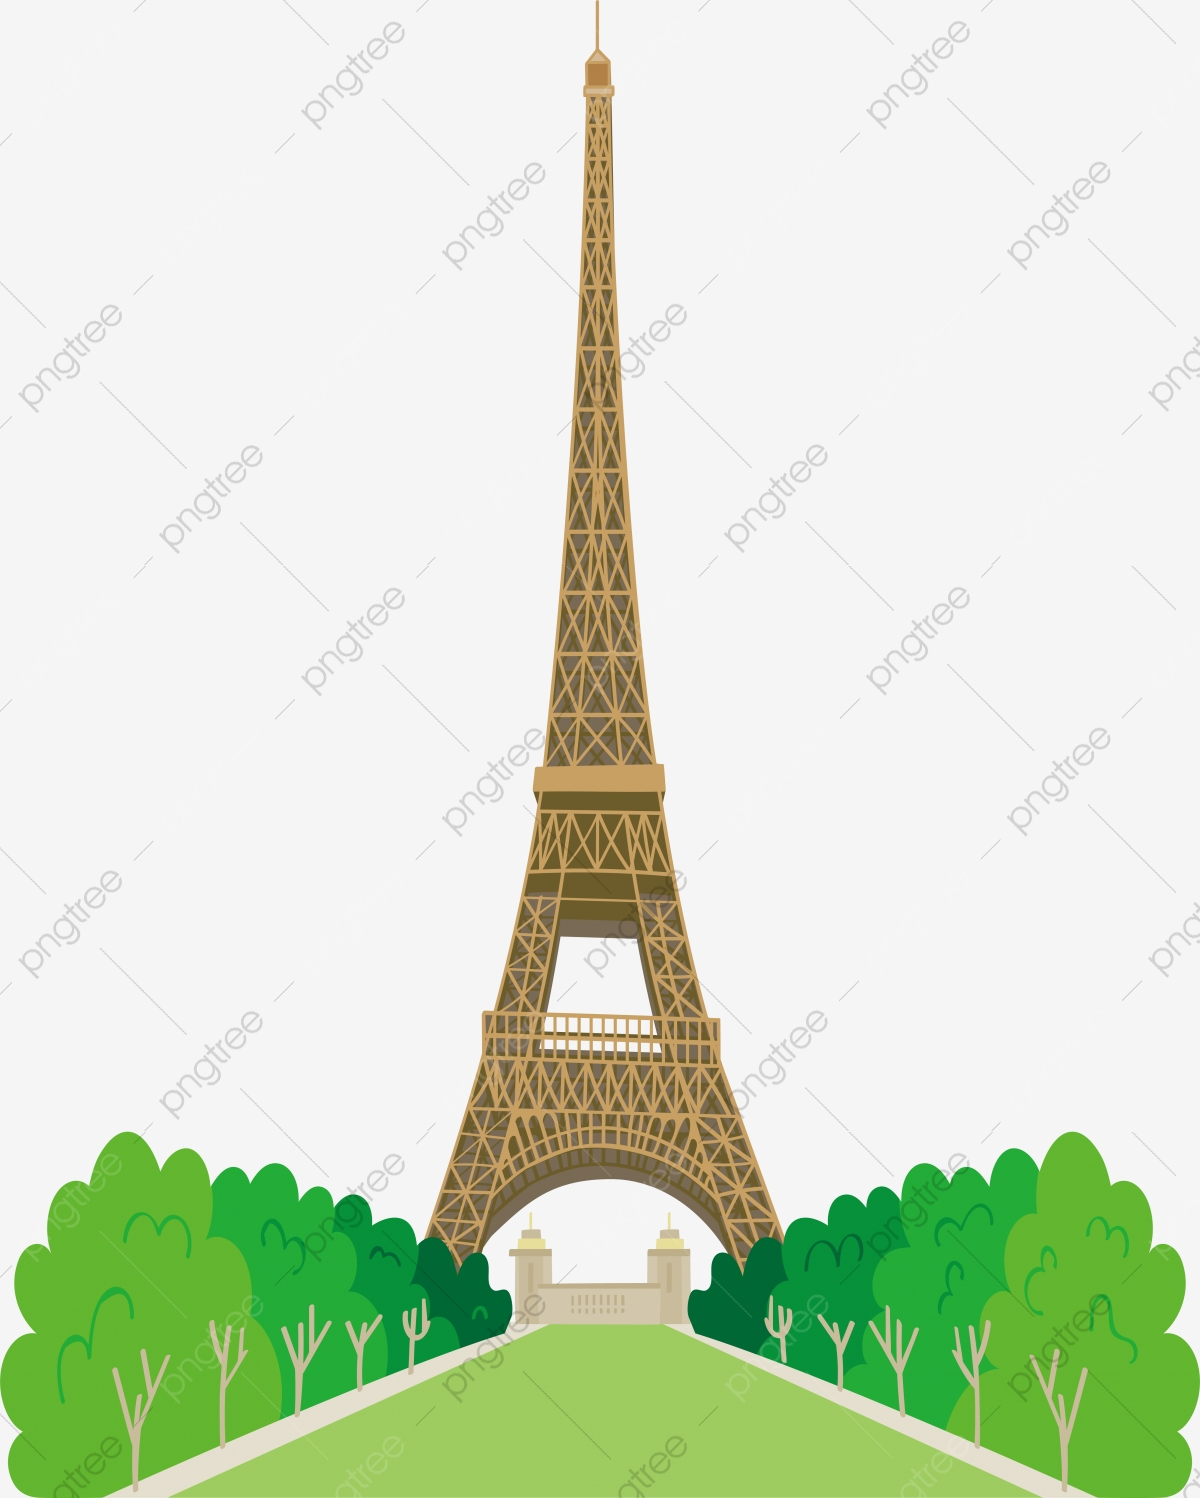 Free Eiffel Tower Clipart, Download Free Clip Art, Free Clip Art on Clipart  Library